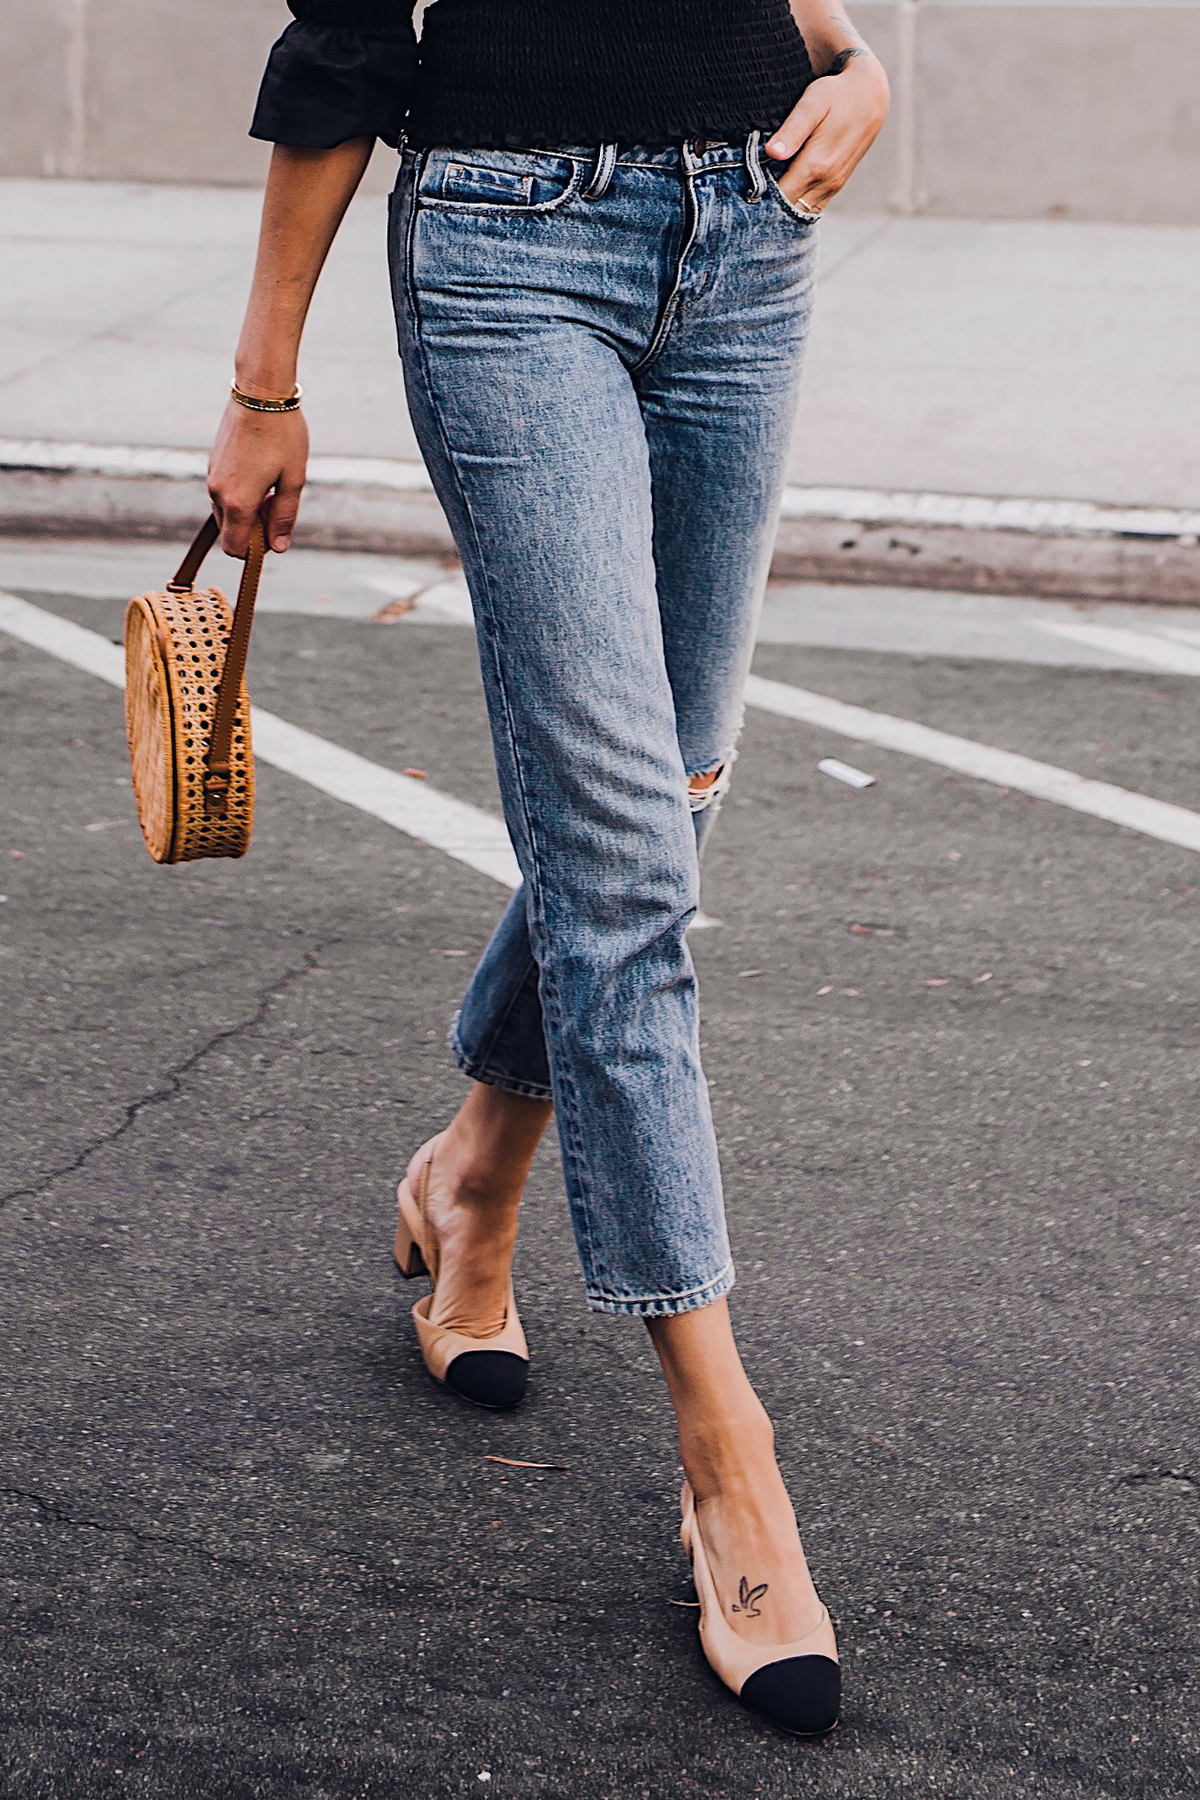 Woman Wearing Fashion Jackson Treasure and Bond Straight Leg Jeans Chanel Slingback Shoes Cane Circle Straw Handbag Fashion Jackson San Diego Fashion Blogger Street Style